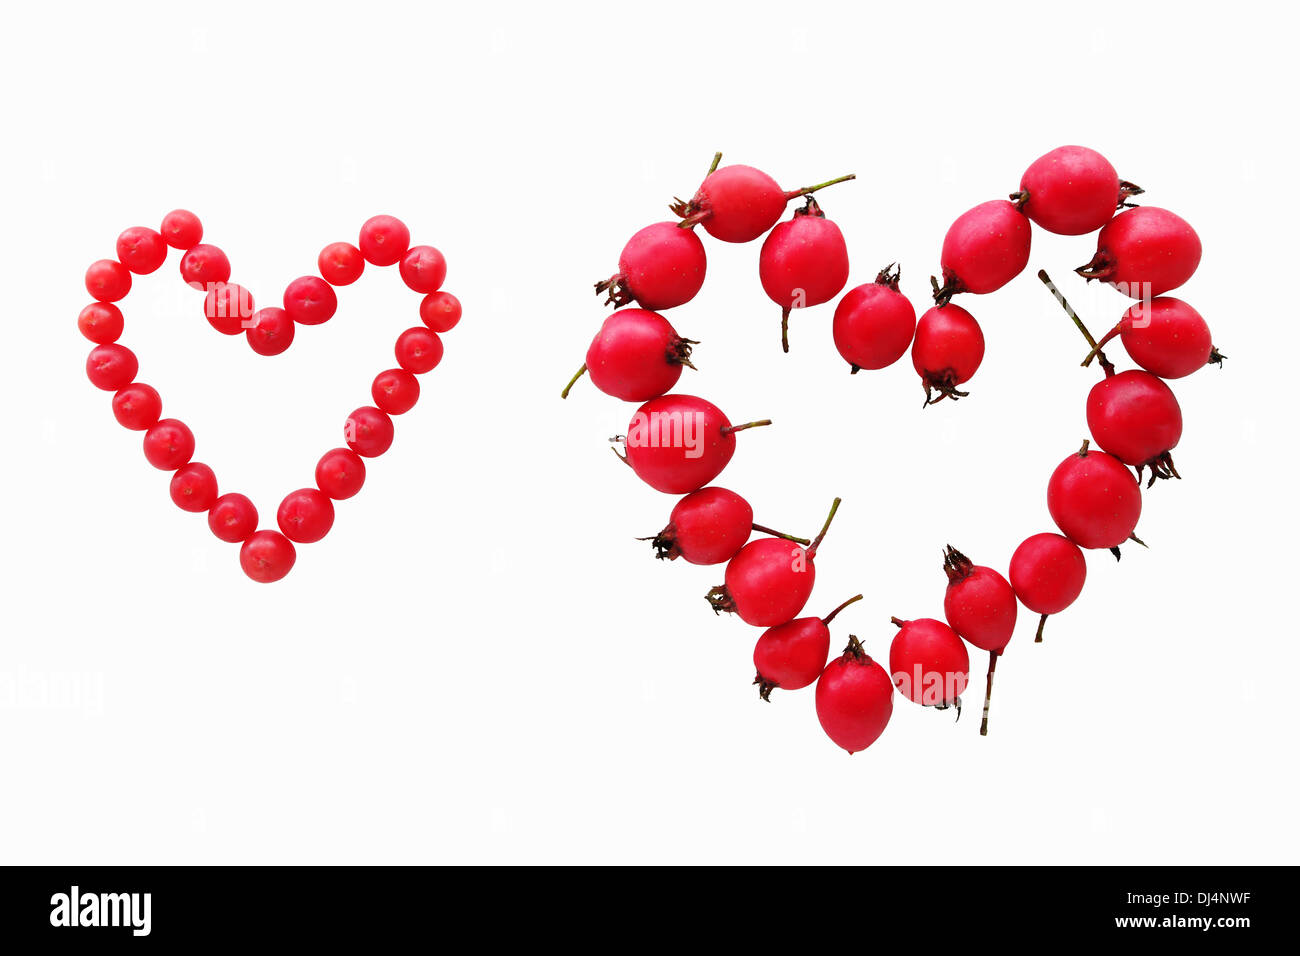 Valentine card concept. Red yew and hawthorn fruits forming two hearts, isolated on white background. - Stock Image